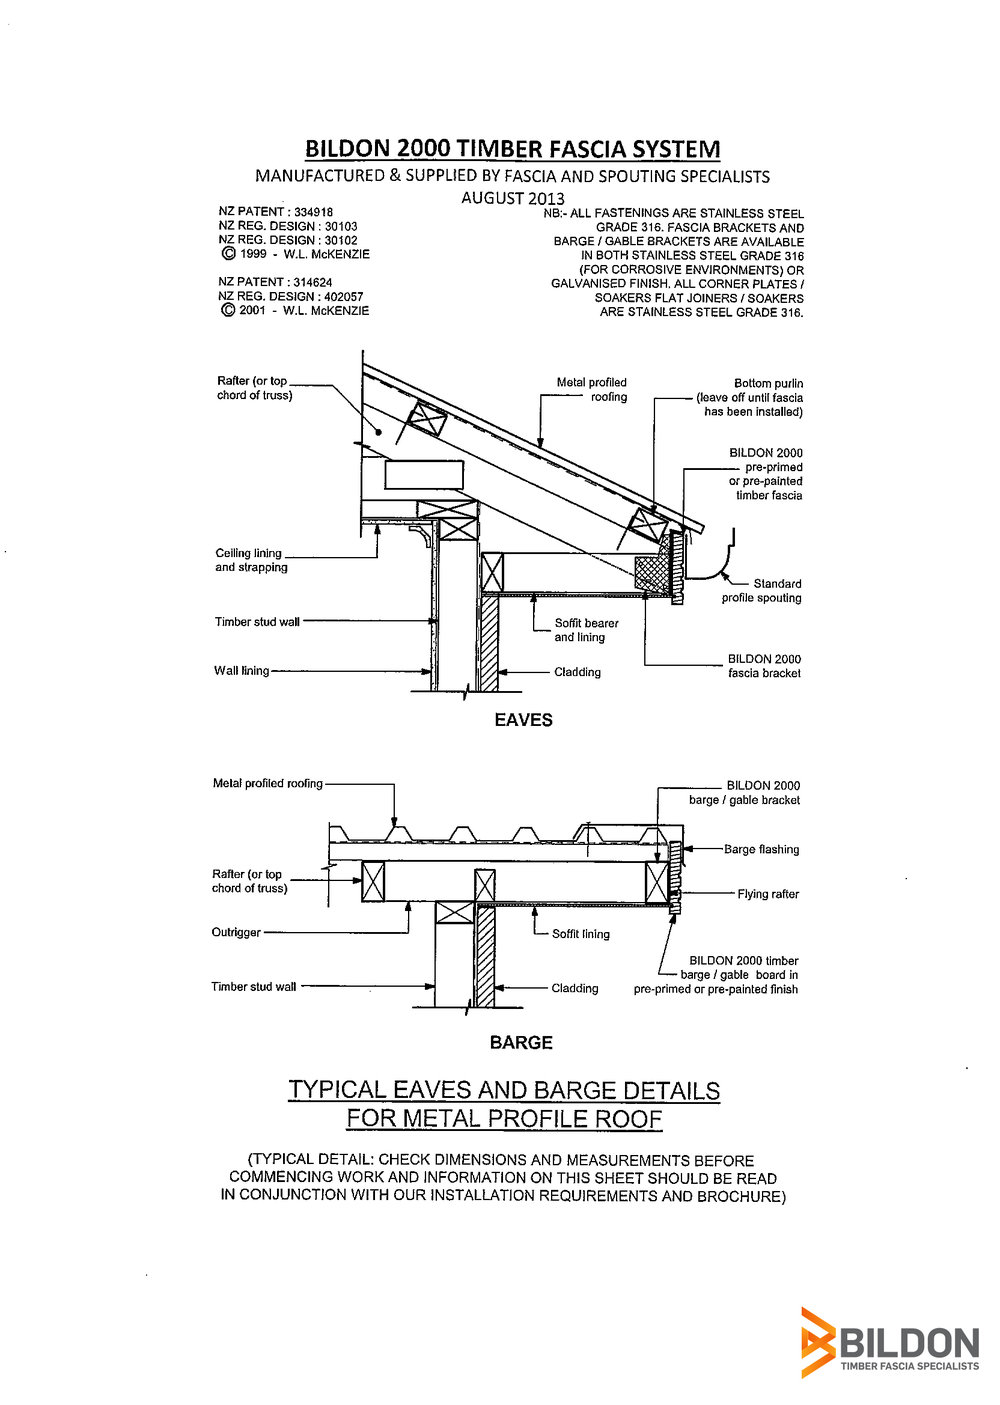 Typical Eaves and Barge Details for Metal Profile Roof.jpg